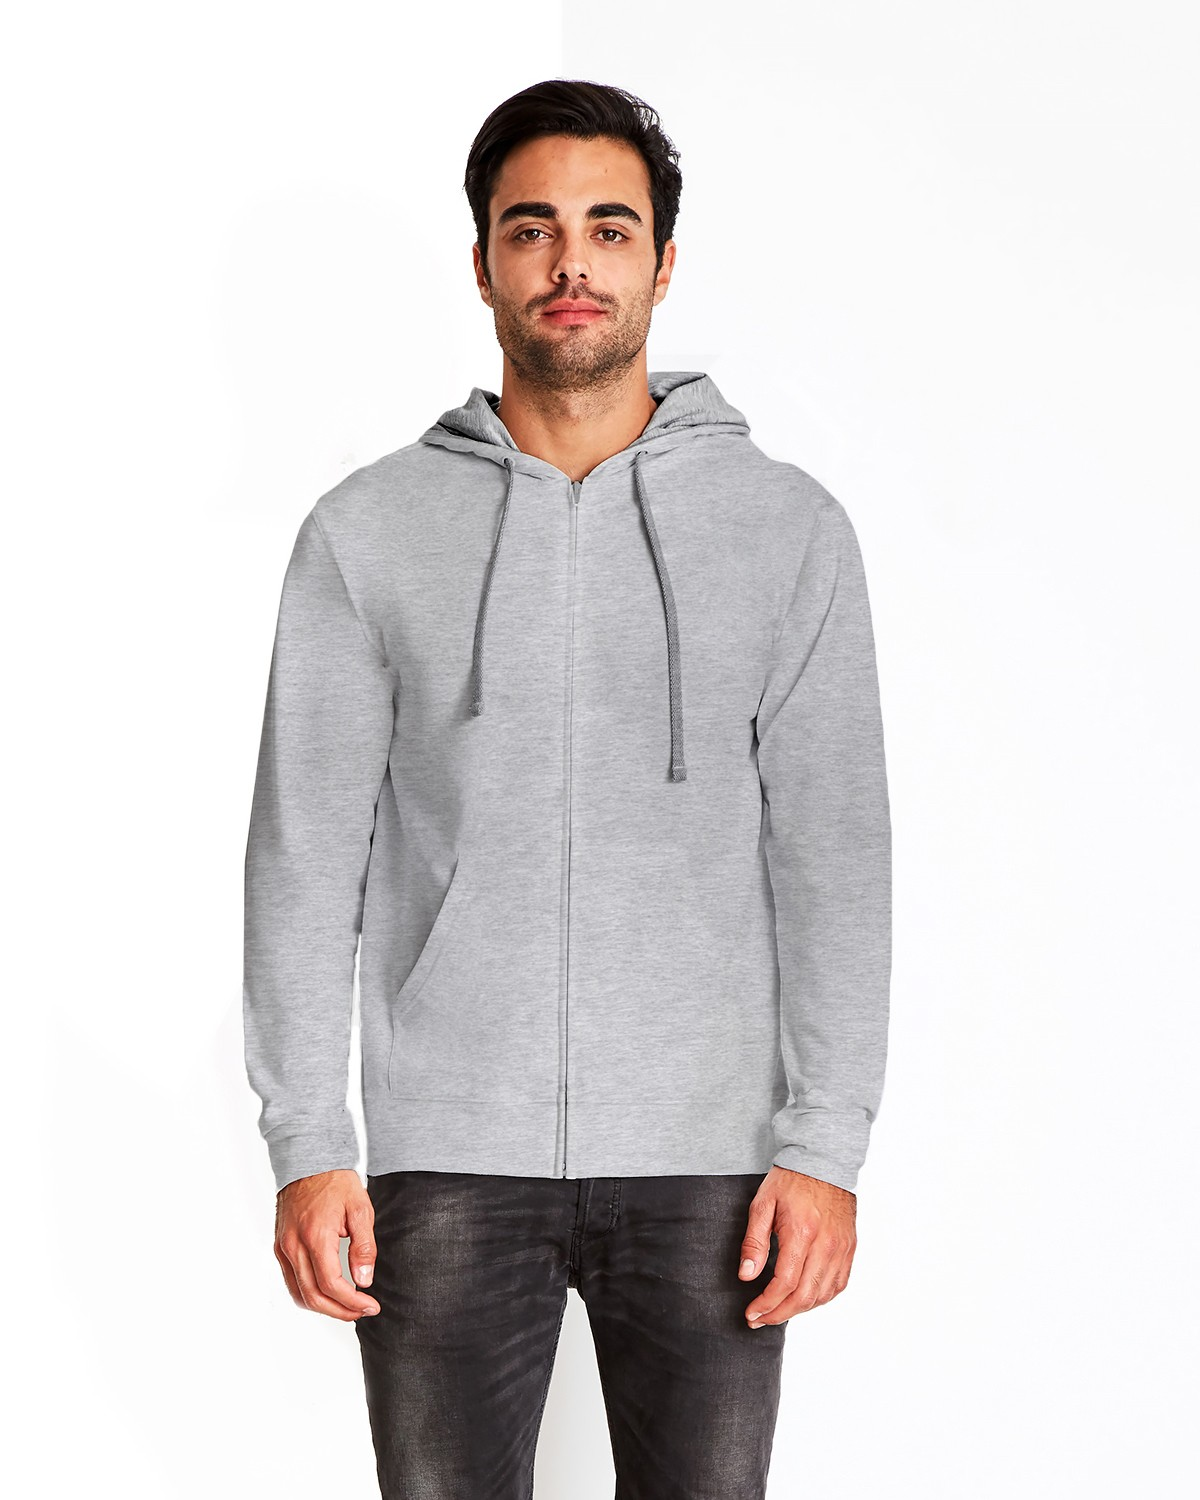 9601 Next Level HTH GRY/HTH GRY